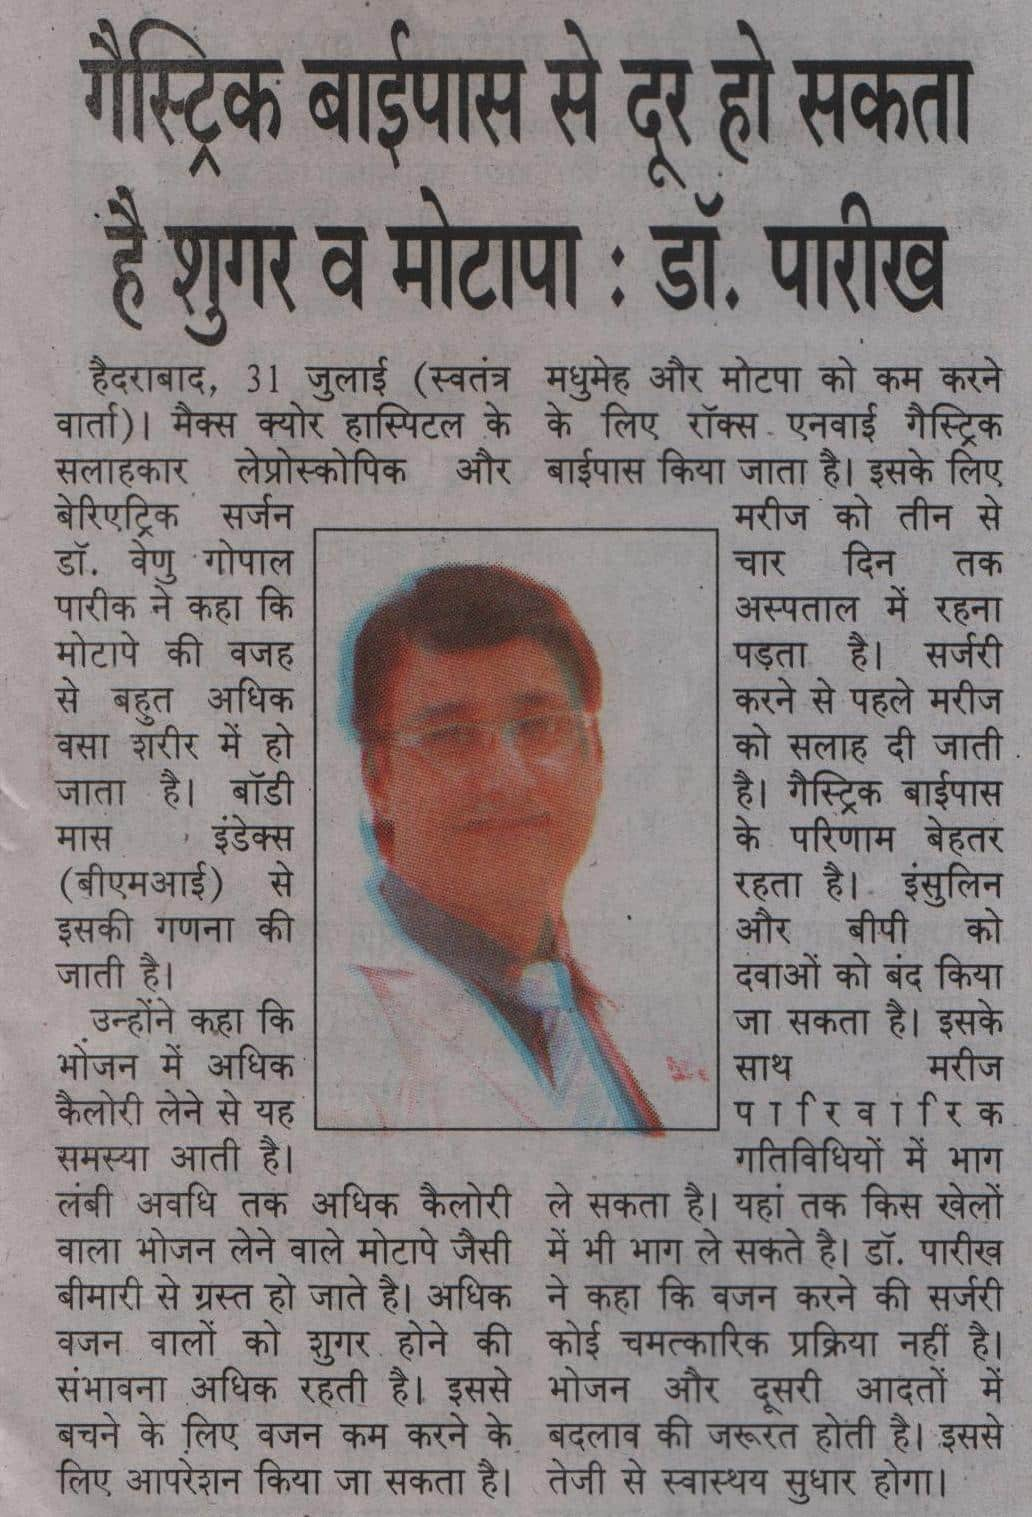 Gastric Bypass Surgery help you to control diabetis and obesity - Dr V Pareek in news